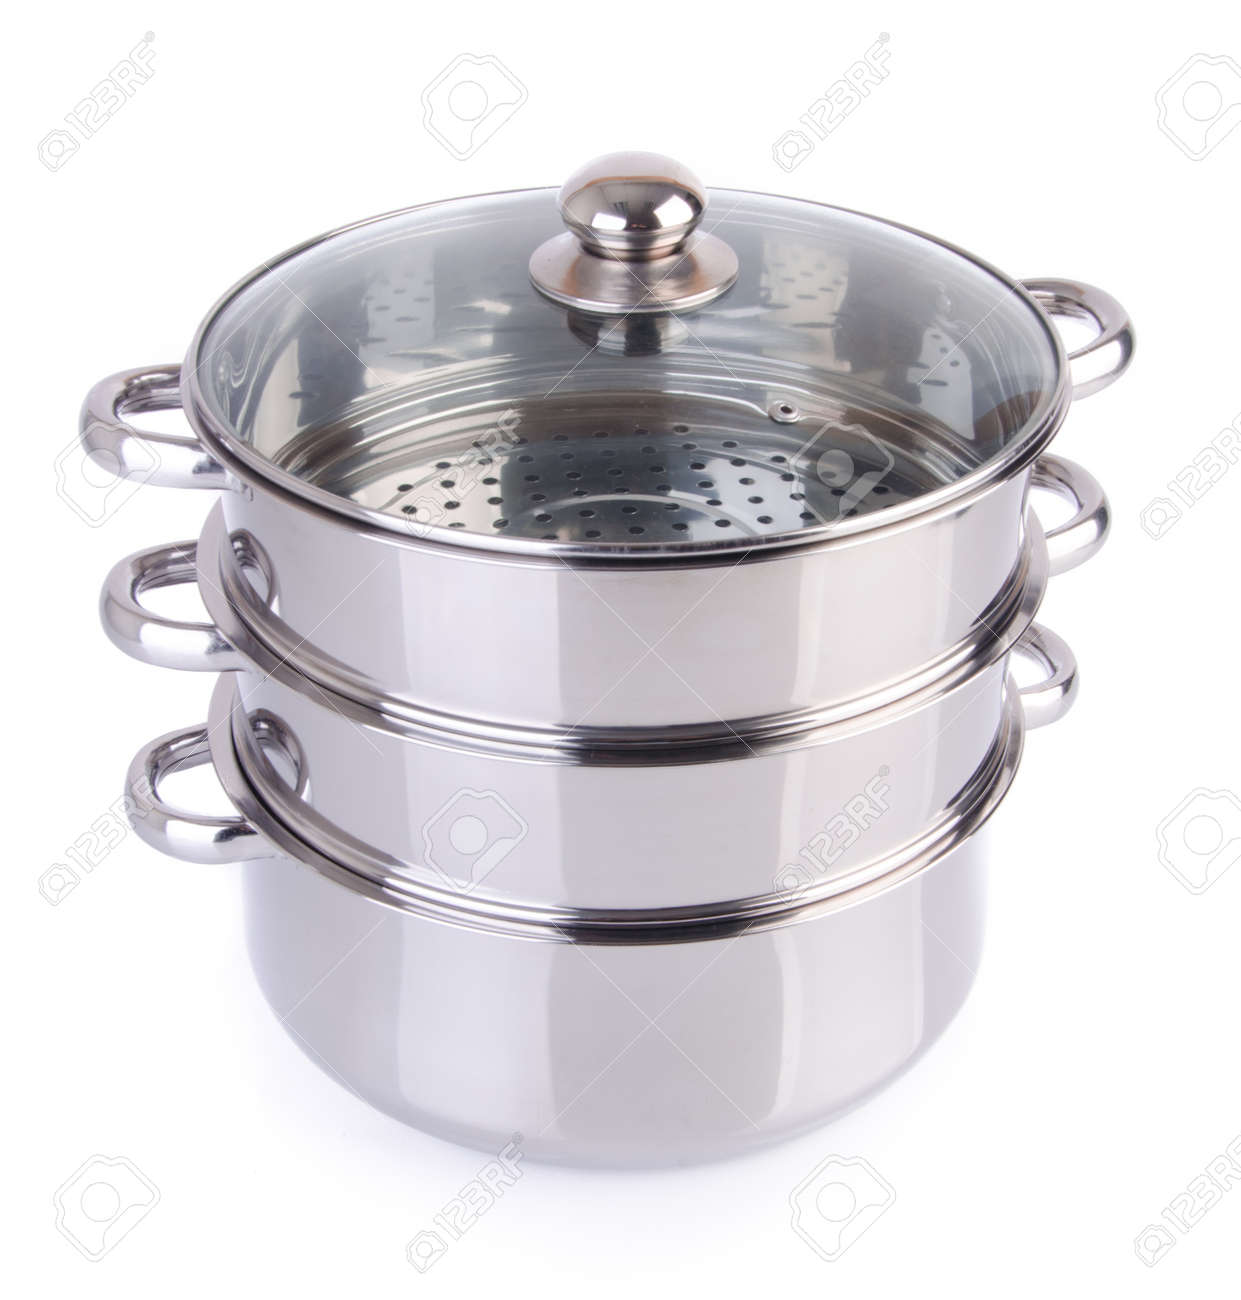 steamer pan on white background Stock Photo - 18289604